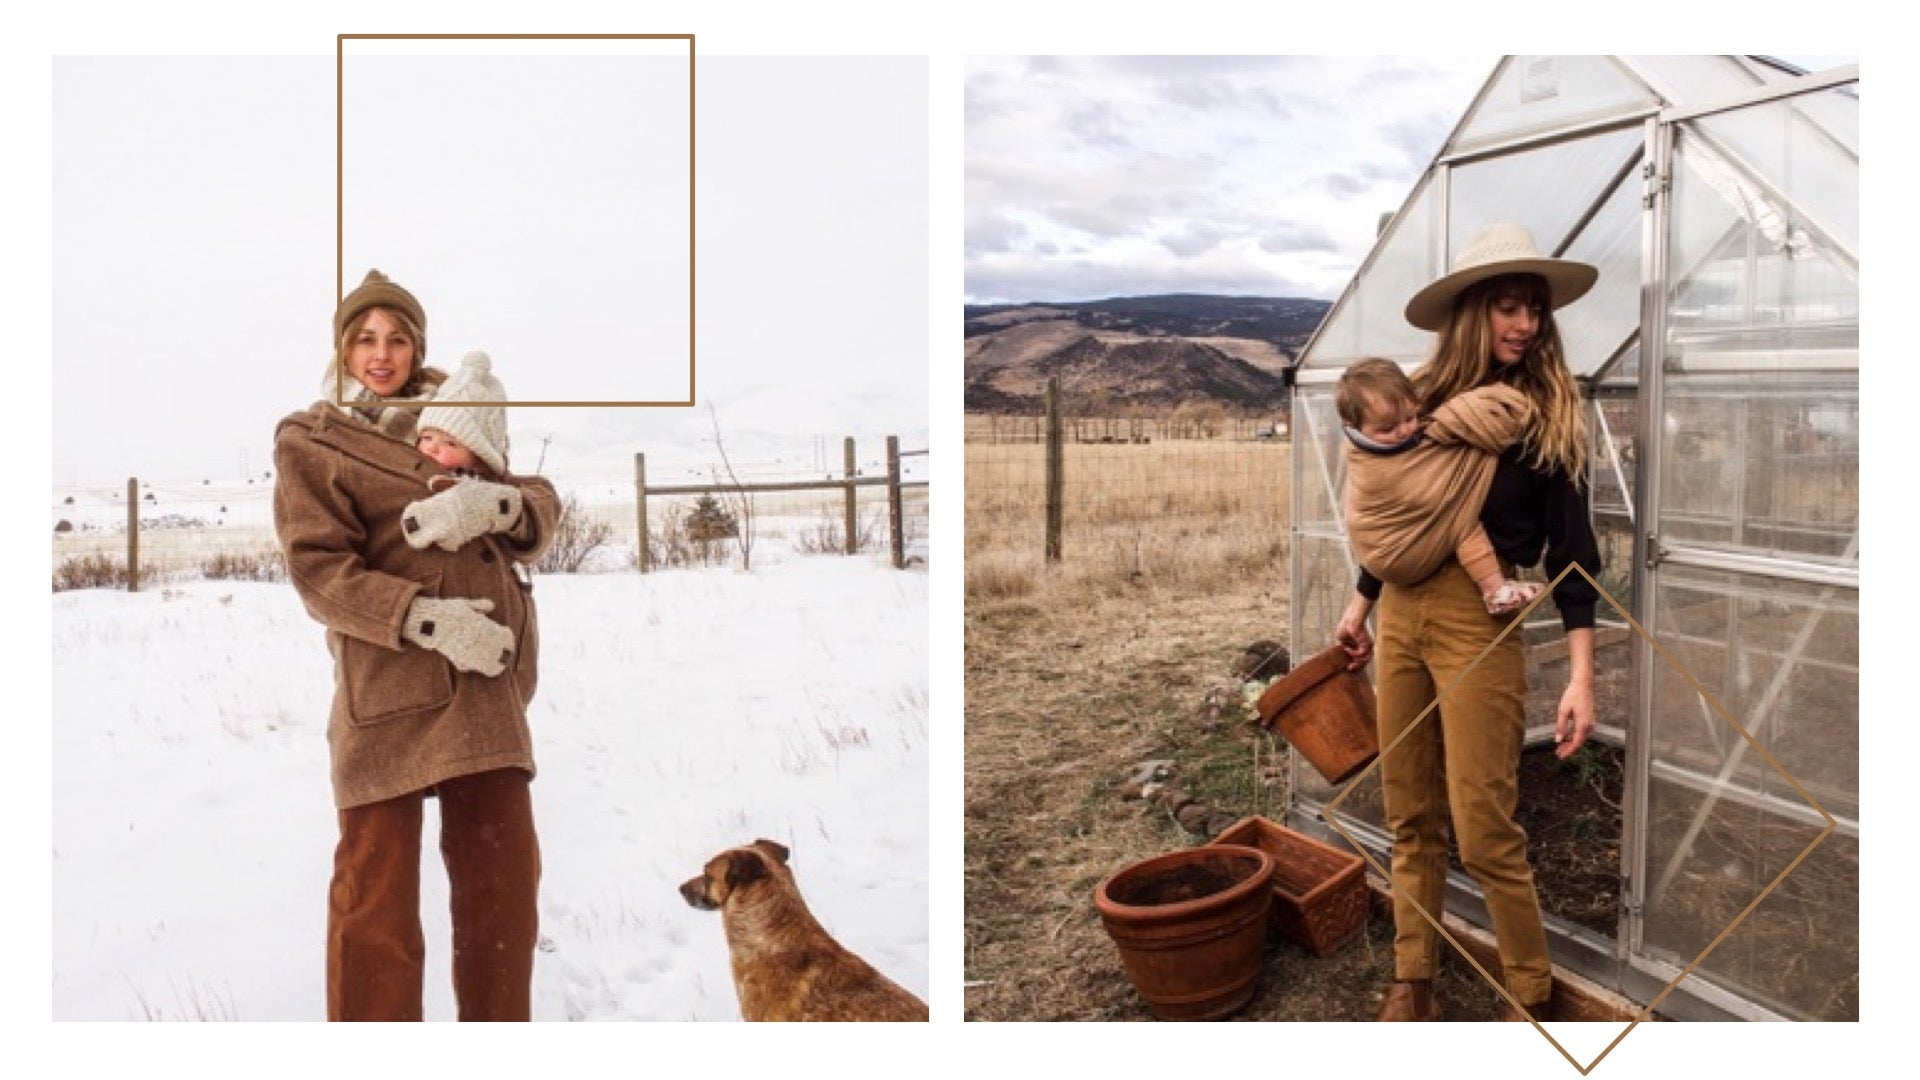 Windy Peak Vintage is a lifestyle shop filled with vintage and ethically sourced handmade goods.  Our shop is curated with love just north of Yellowstone in the countryside of Montana.  Here we focus on quality over quantity, living slow and embracing our close connection to nature.